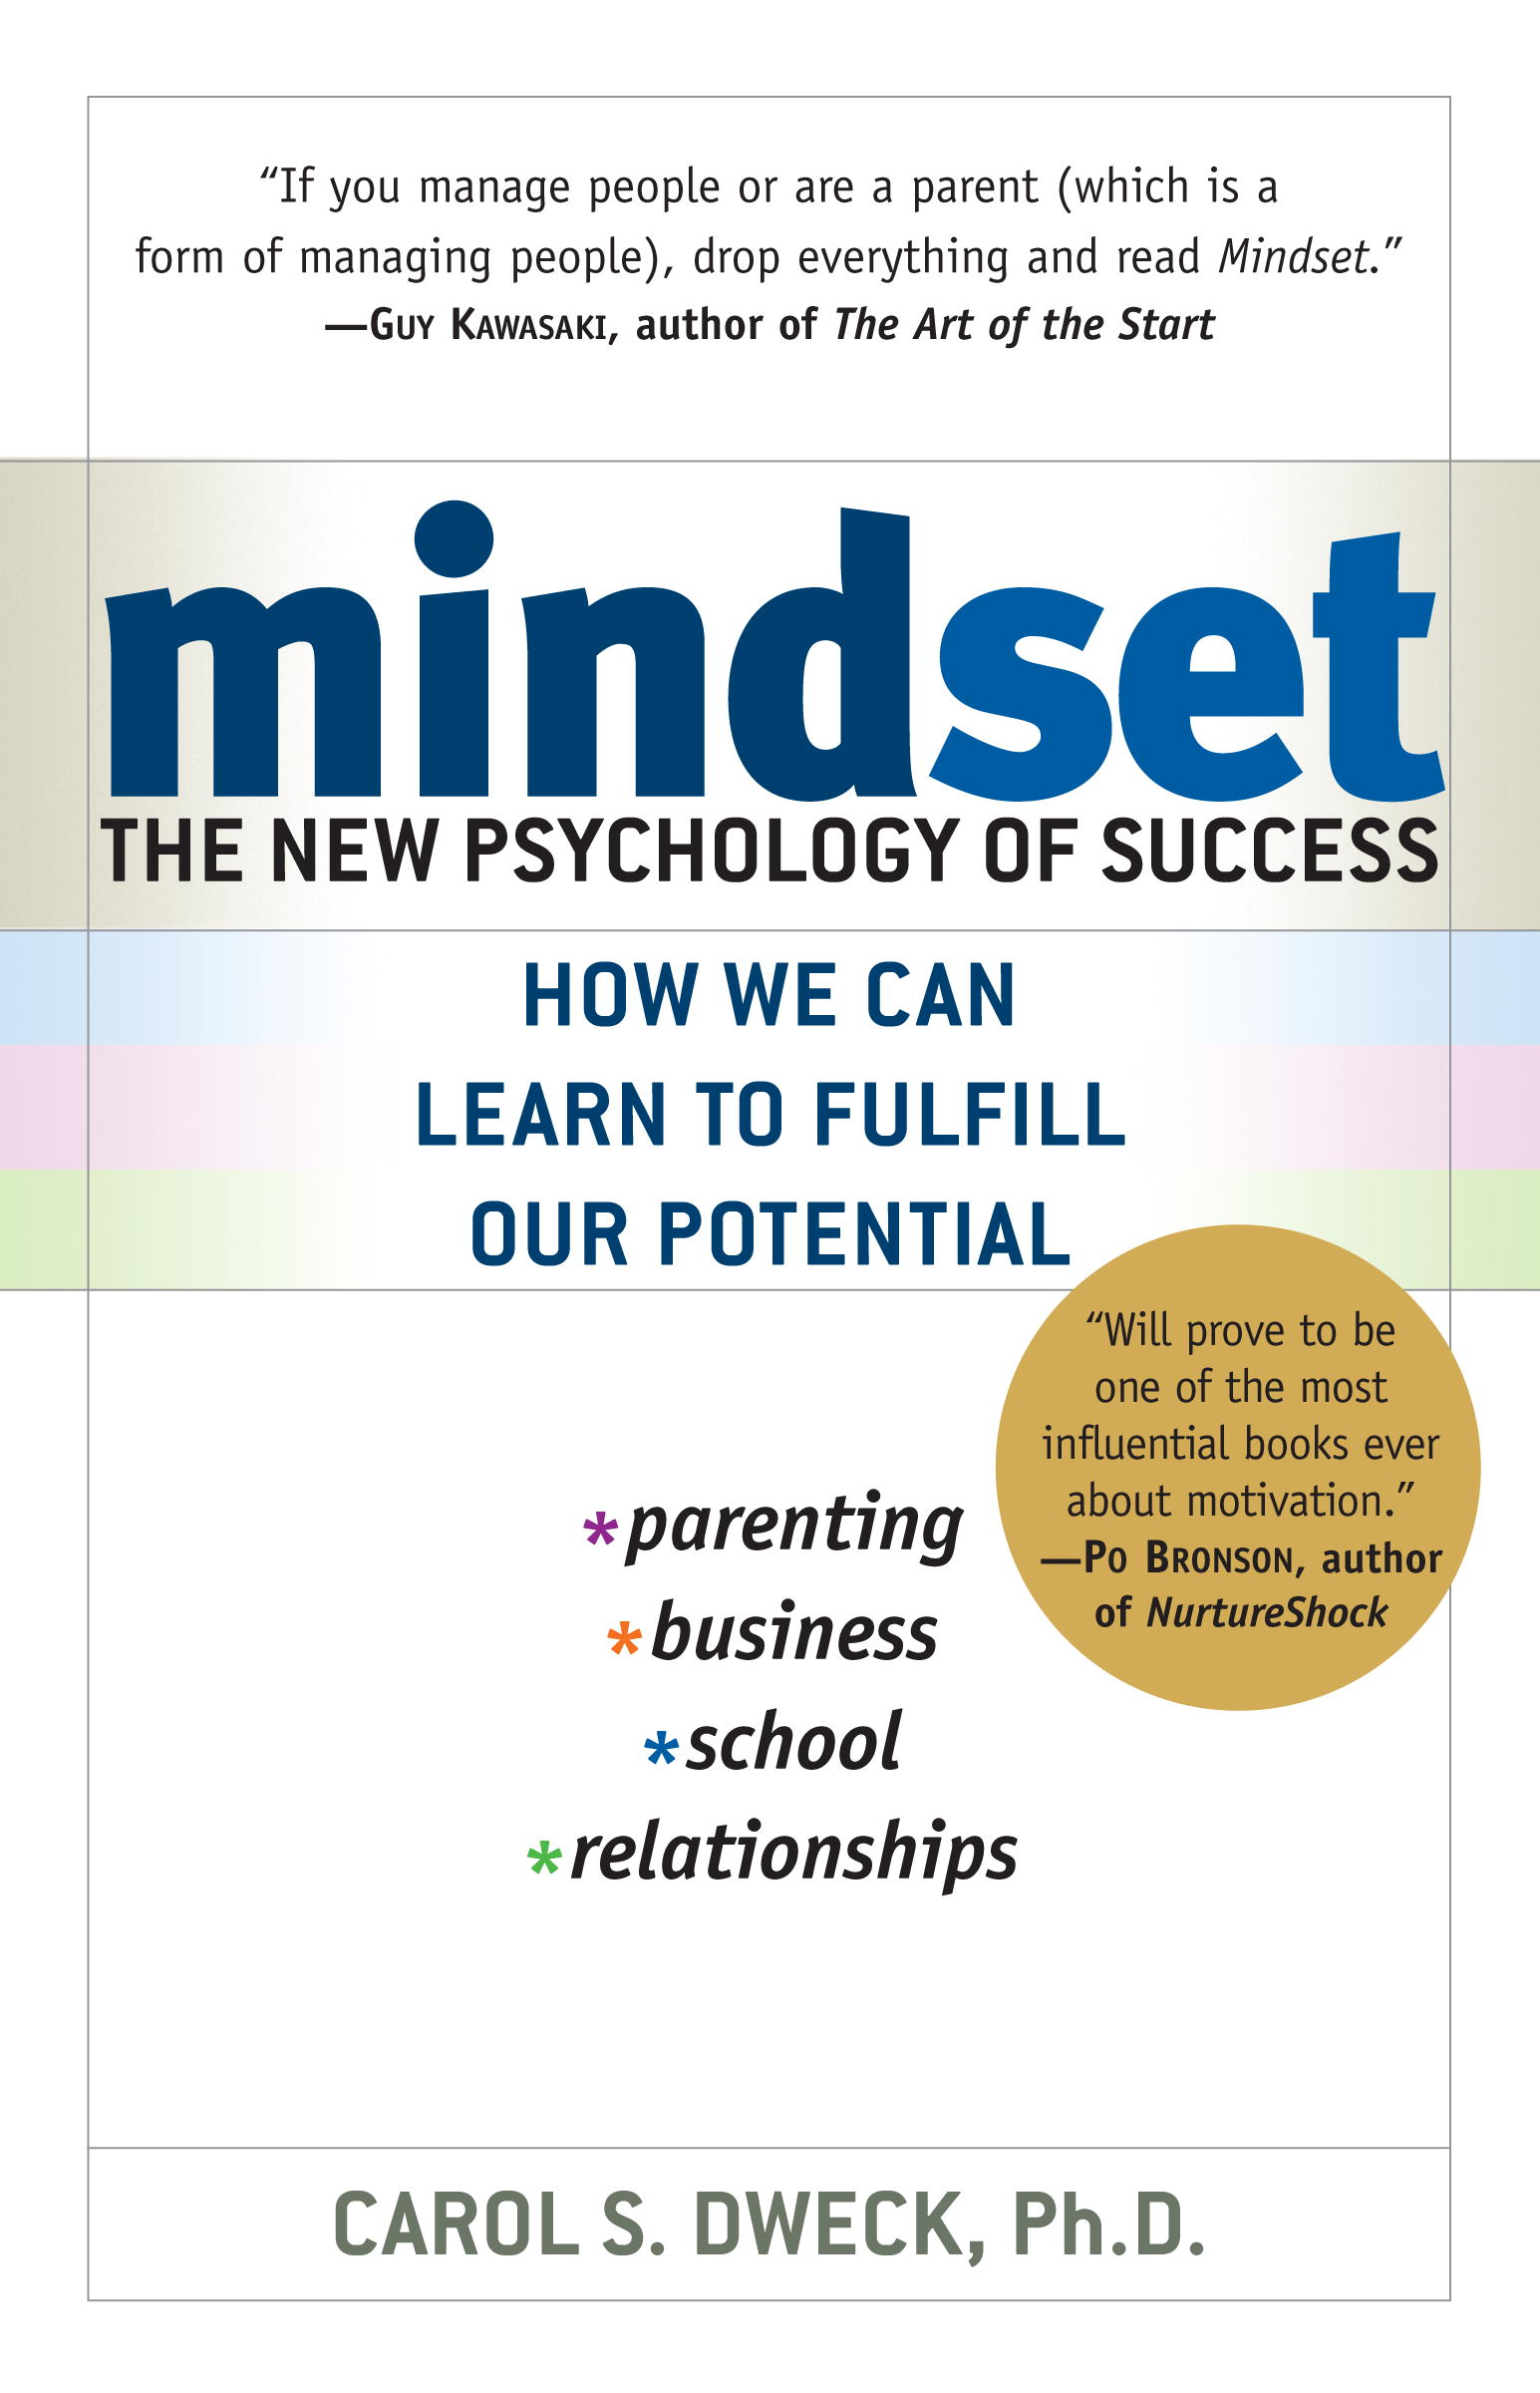 Book reviewed at the American Counseling Association Conference that Kerrie Donnelly and Lysa Pirone attended with a LEF grant